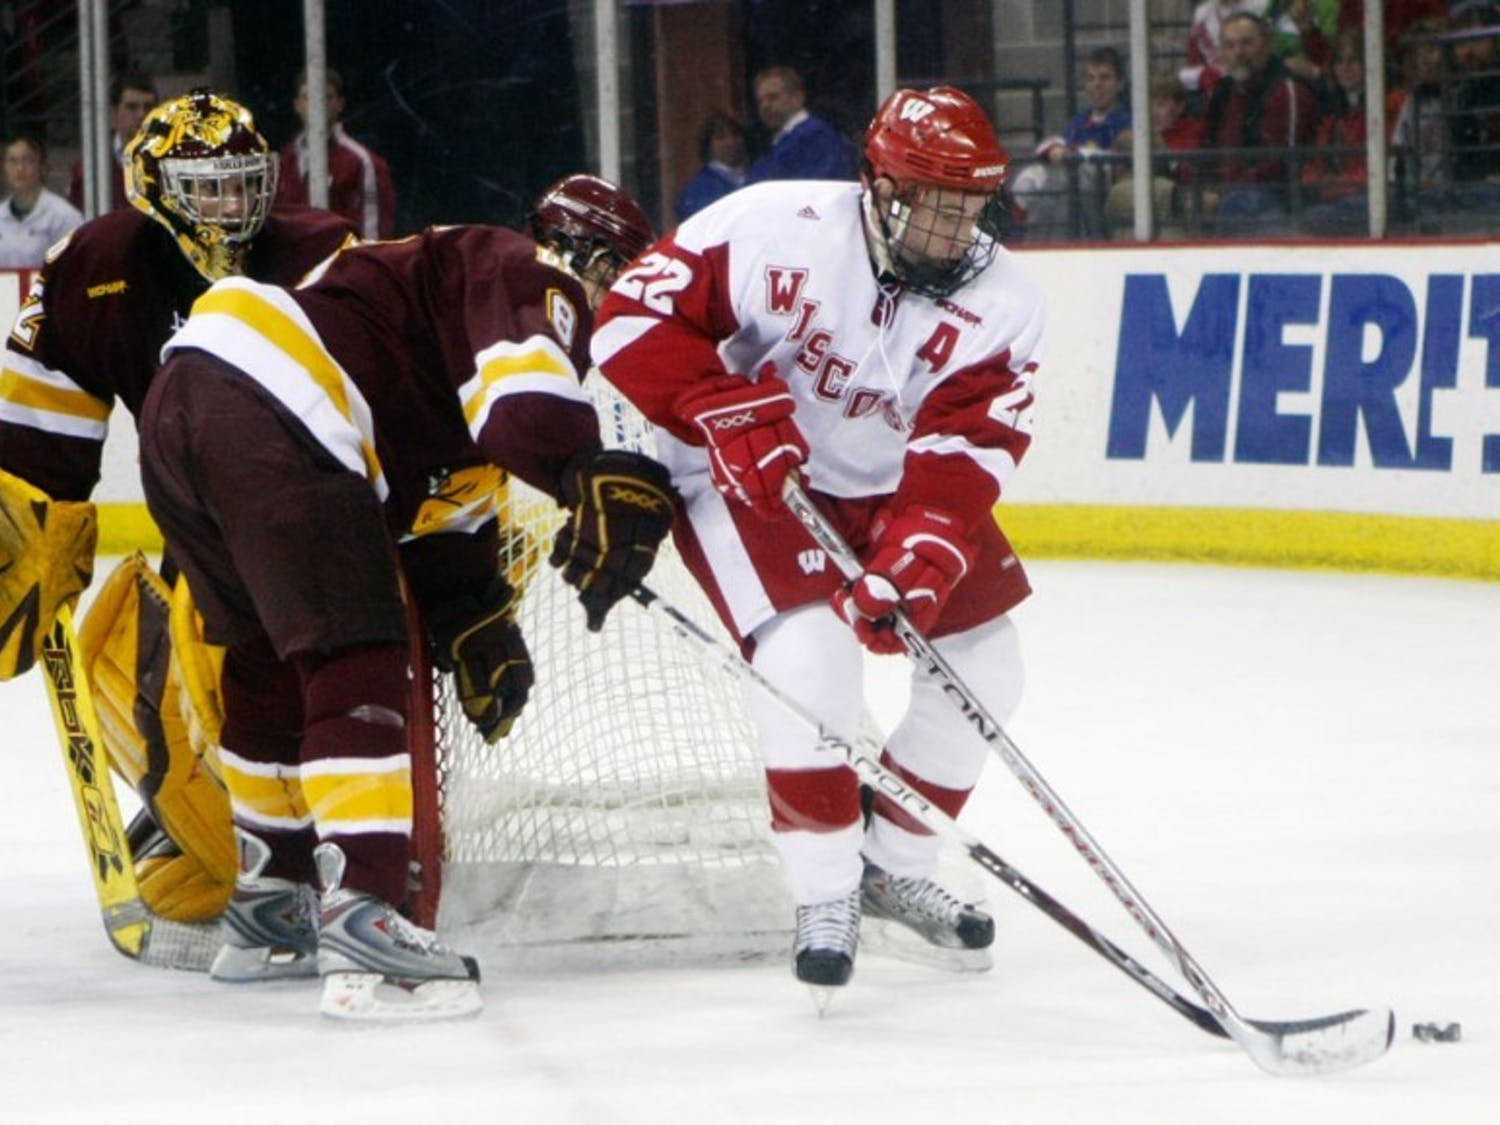 Badgers look to improve on disappointing season